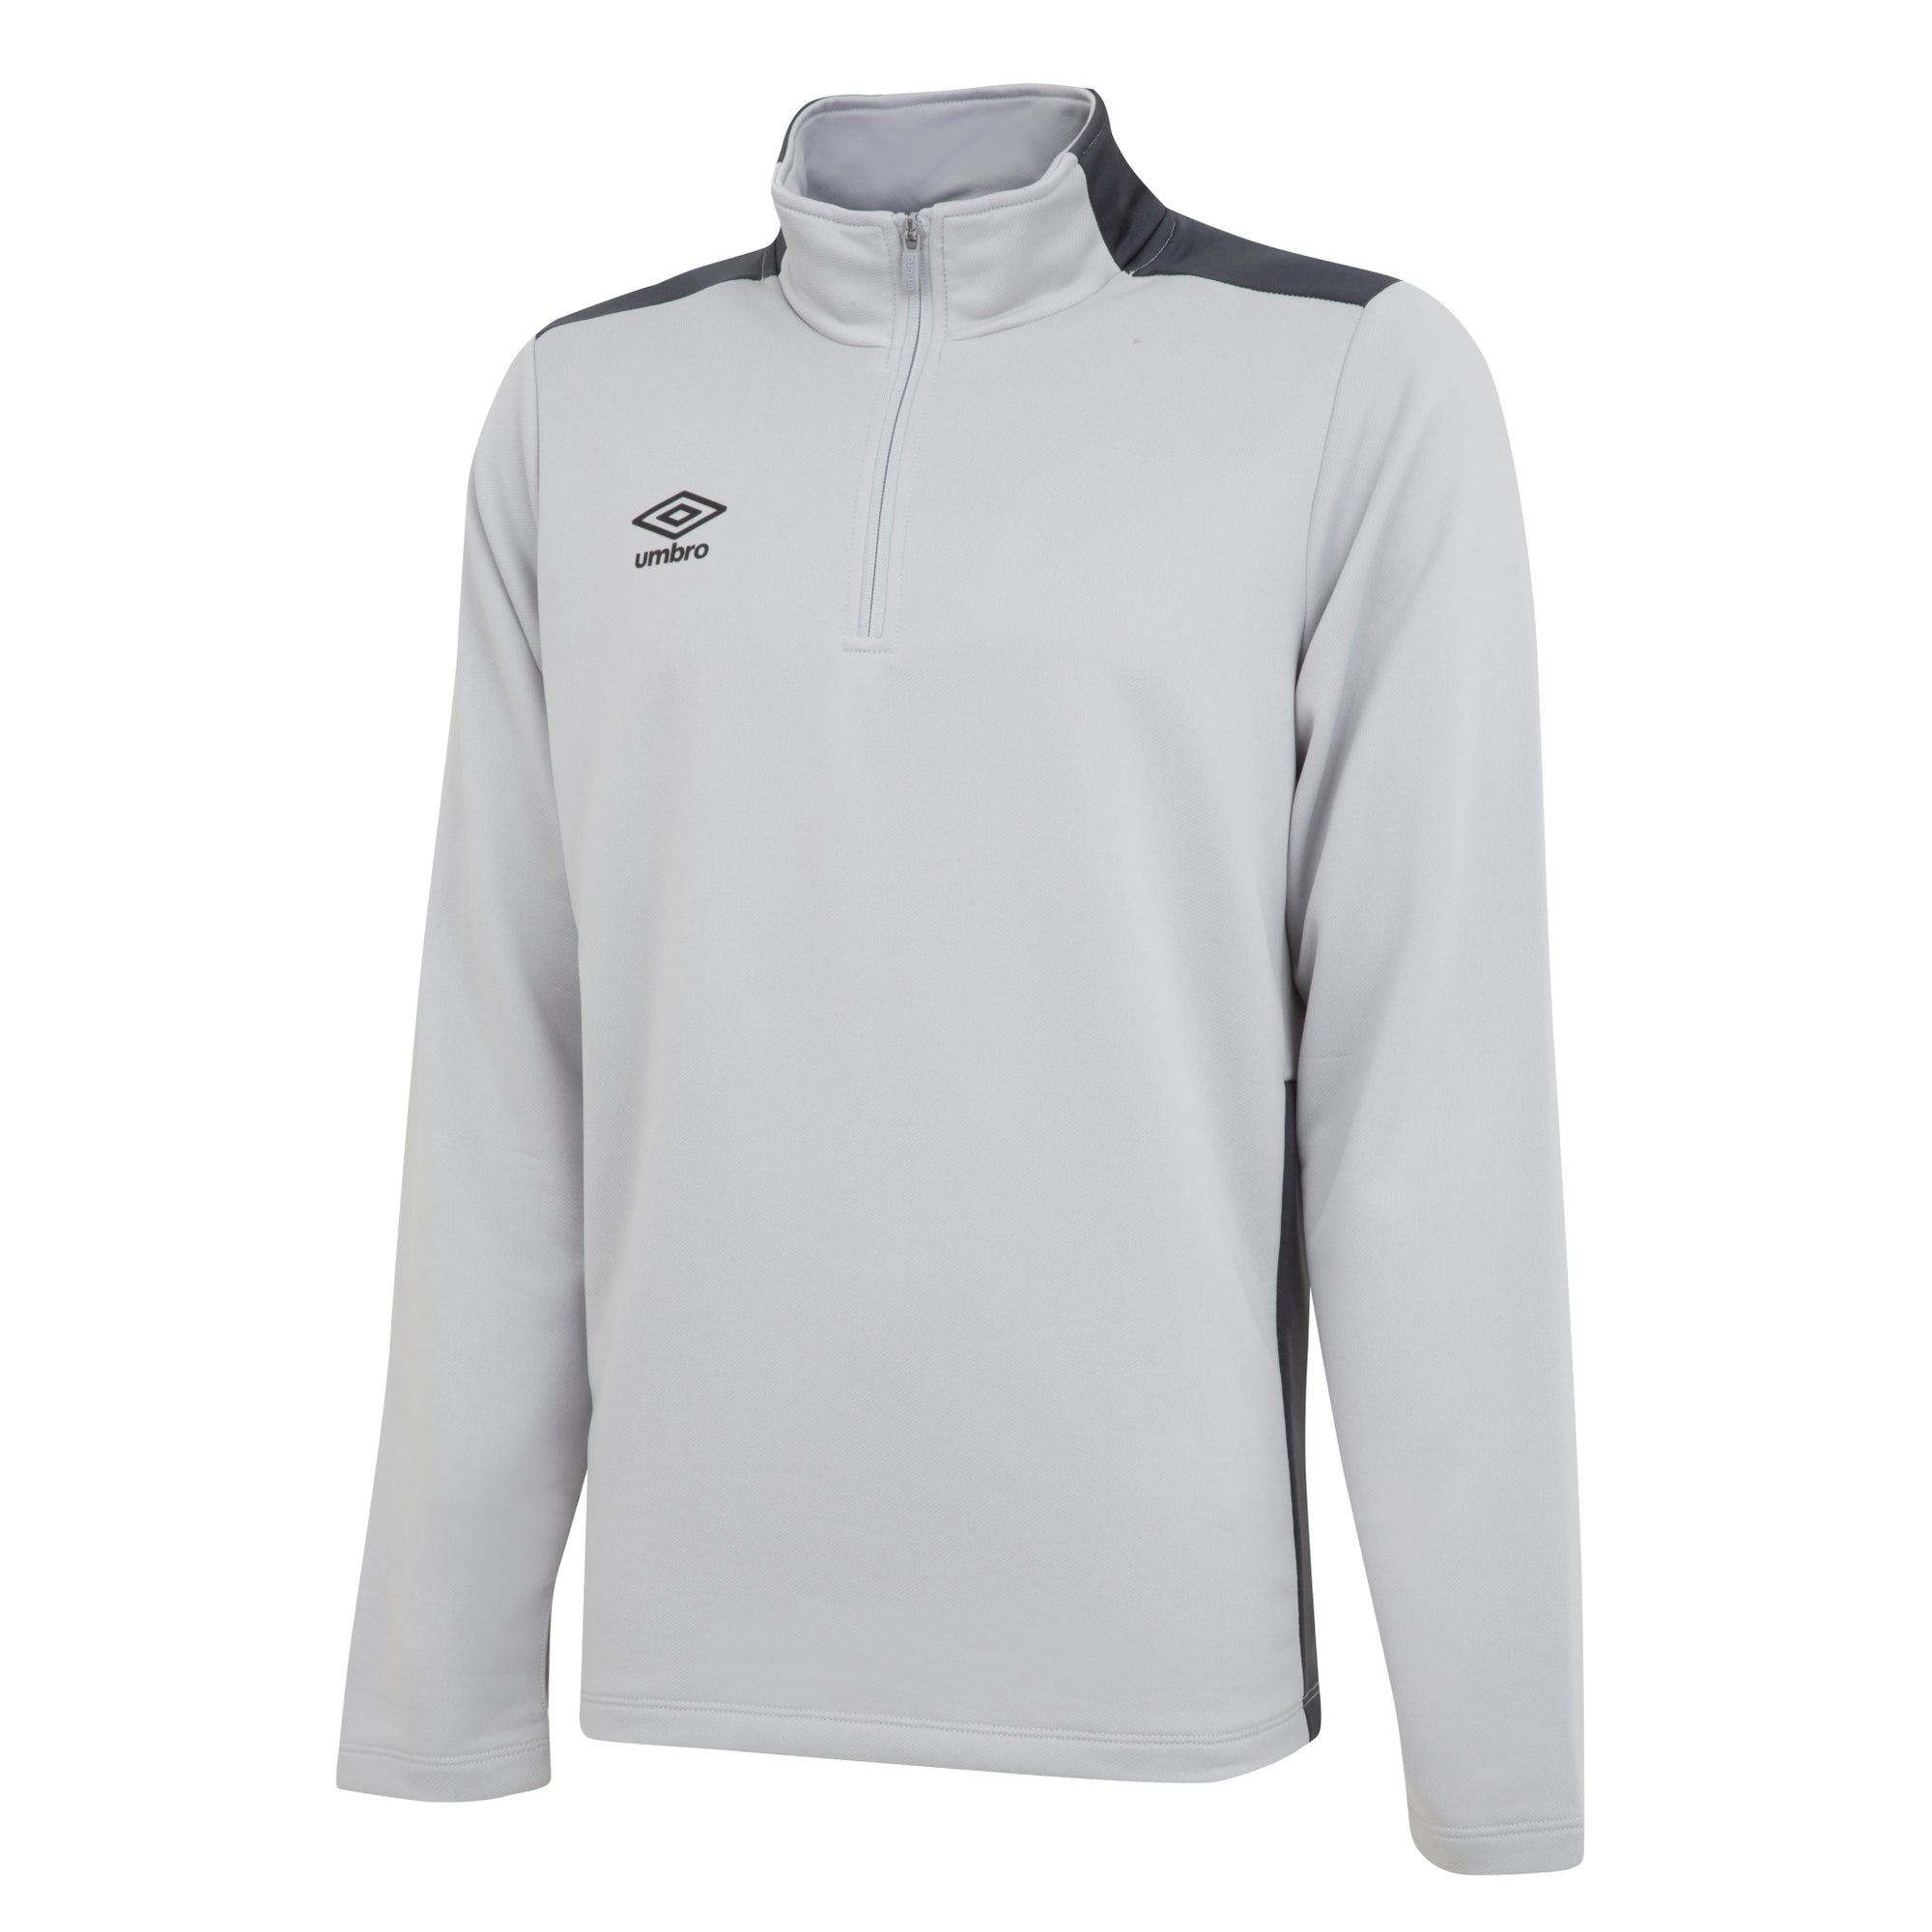 umbro 1/2 zip top in high rise and carbon.